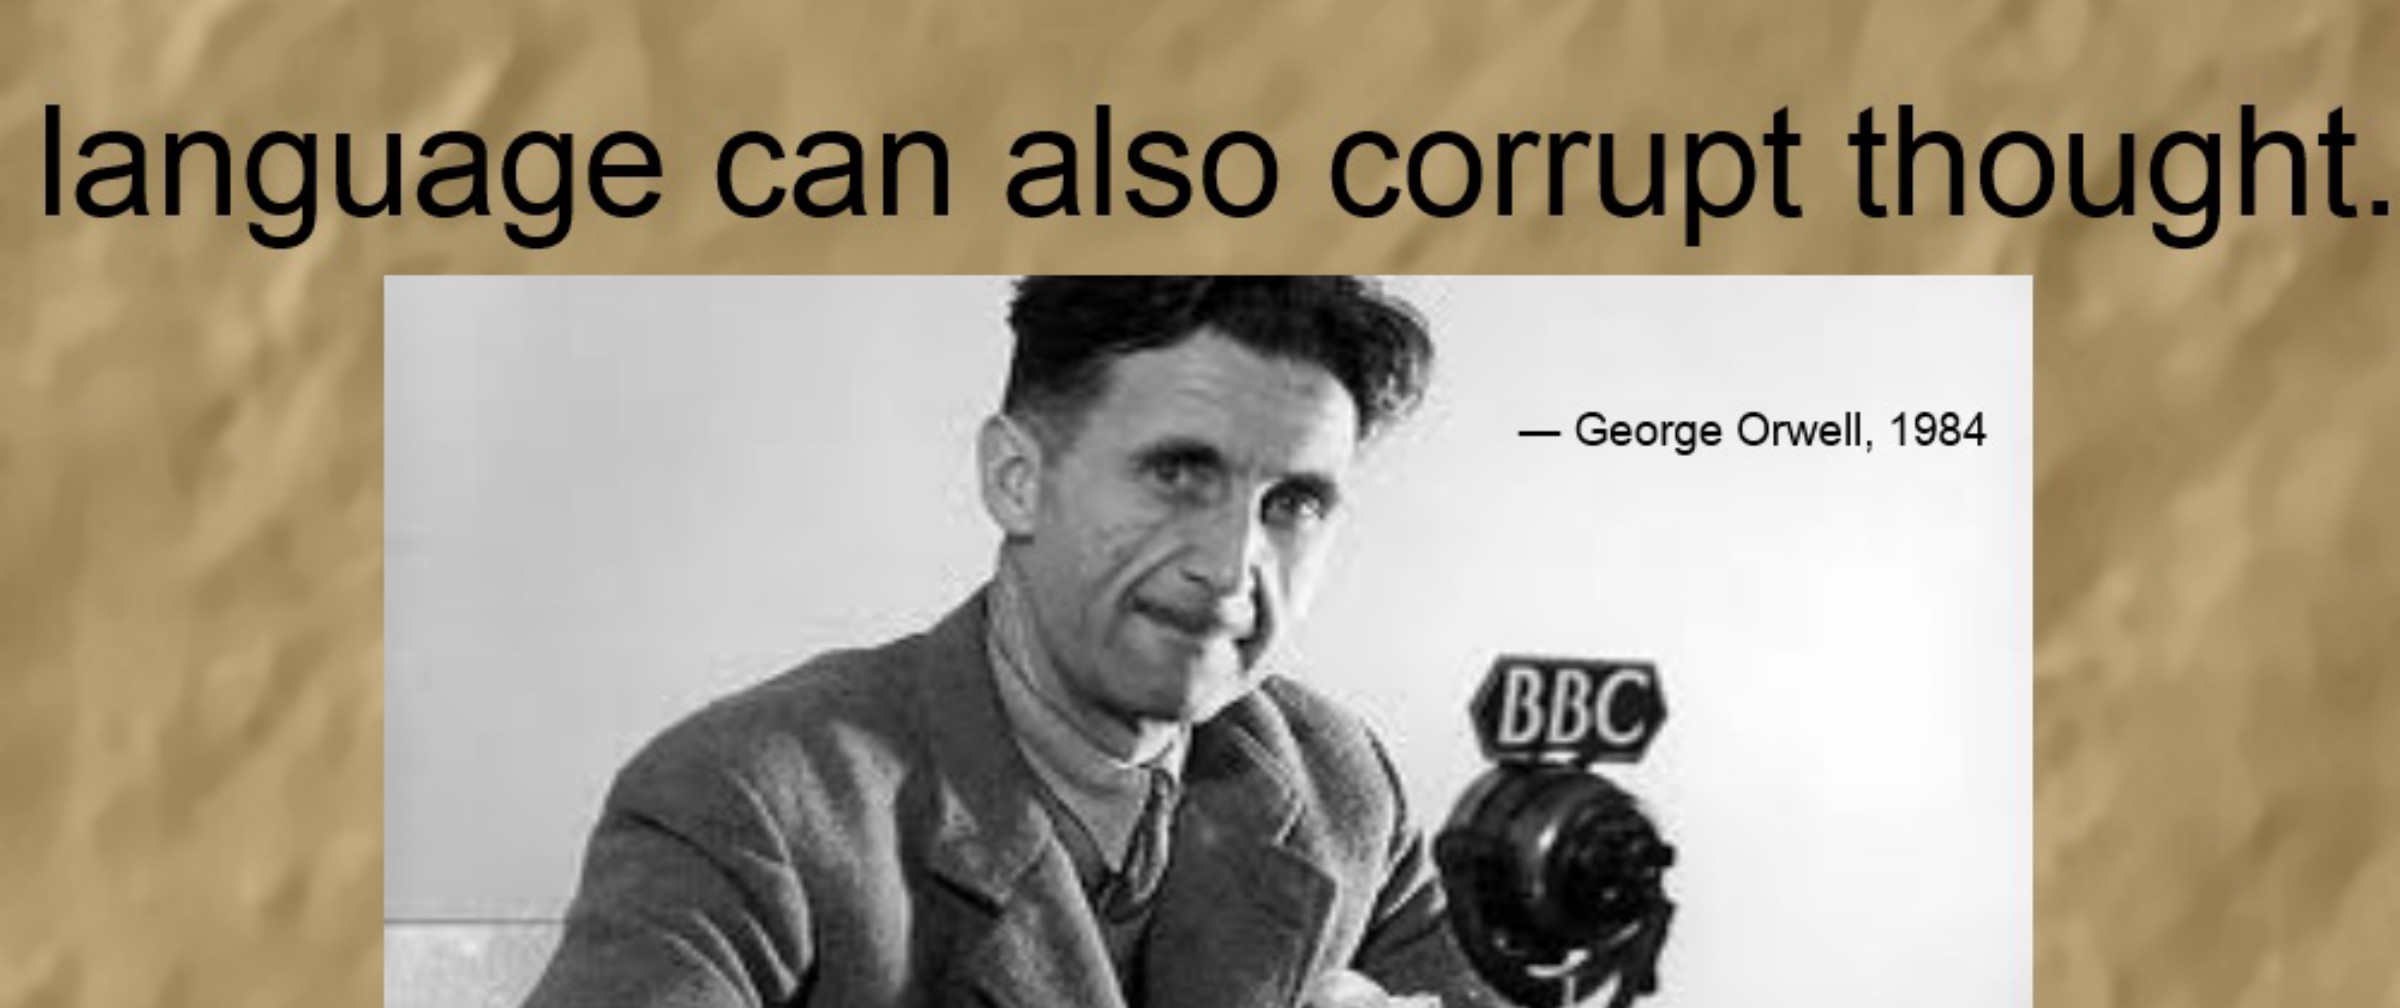 if thought corrupt language language can corrupt thought s 5 what does orwell mean when he asserts, but if thought corrupts language, language can also corrupt thought (para 16) orwell means that the way a.